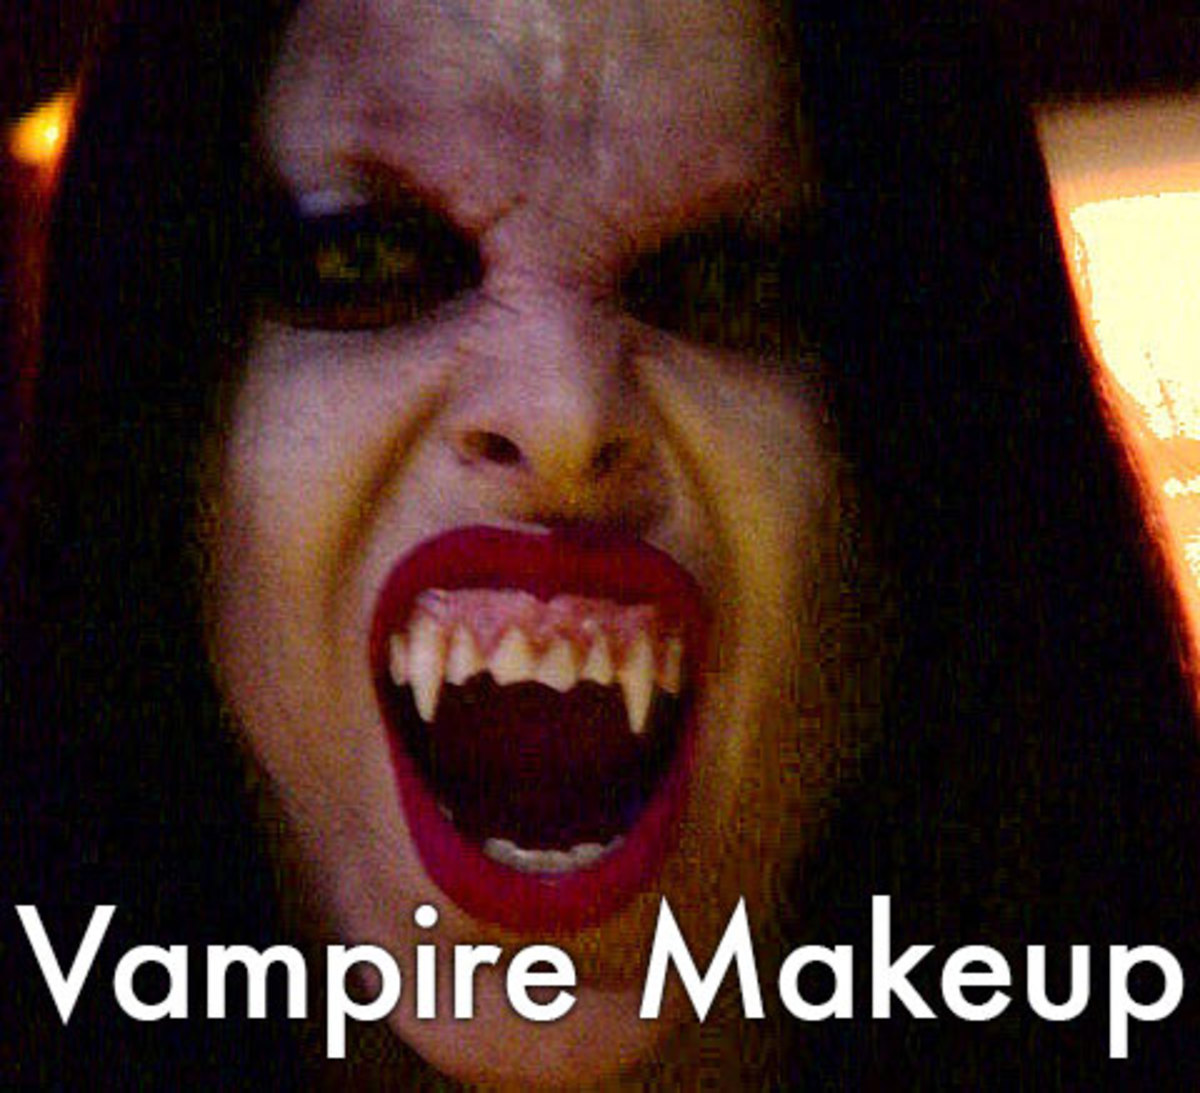 Vampire makeup ideas and tutorials for men and women.